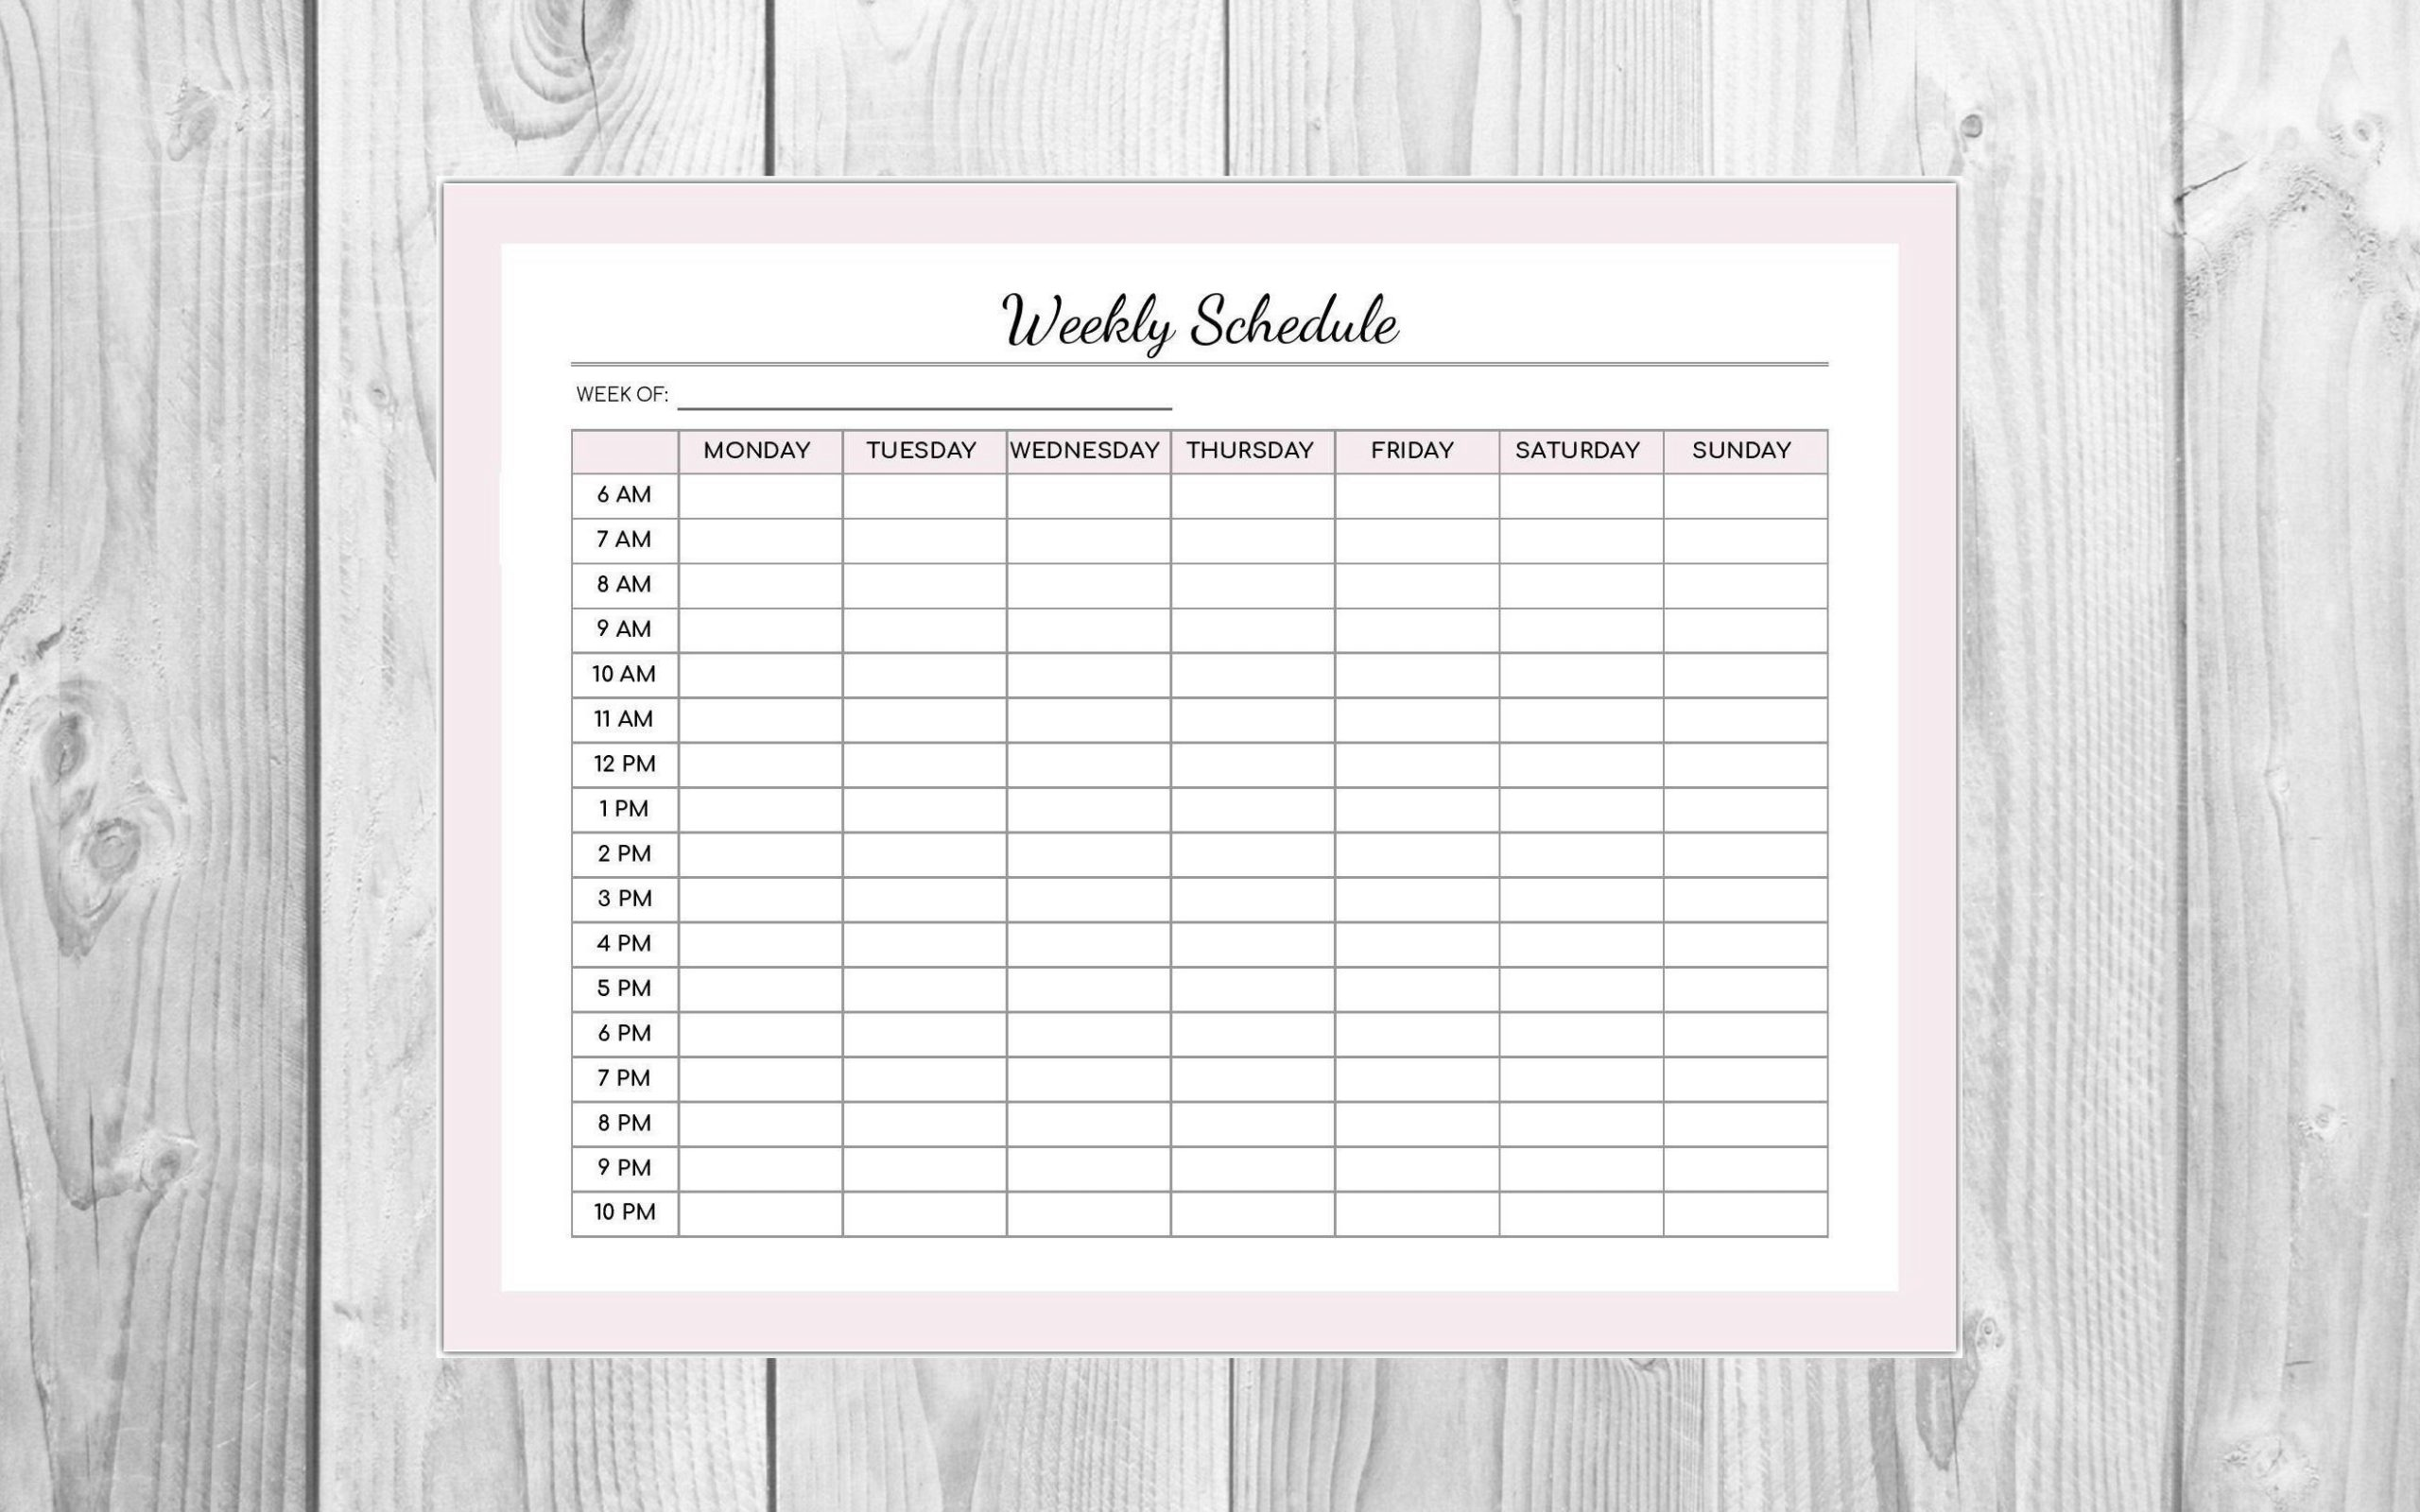 Weekly Schedule Pink Editable Pdf  Hourly Schedule Monday Friday Schedule Download